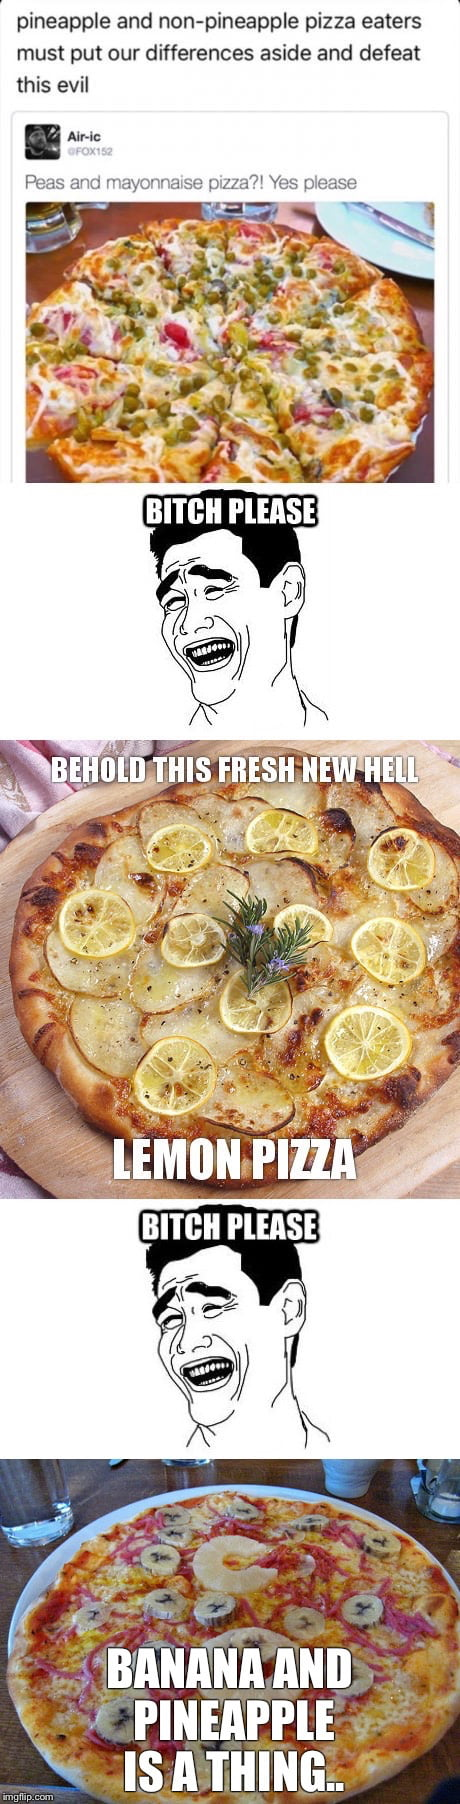 WE MUST UNITE AGAINST THESE EVIL PIZZAS